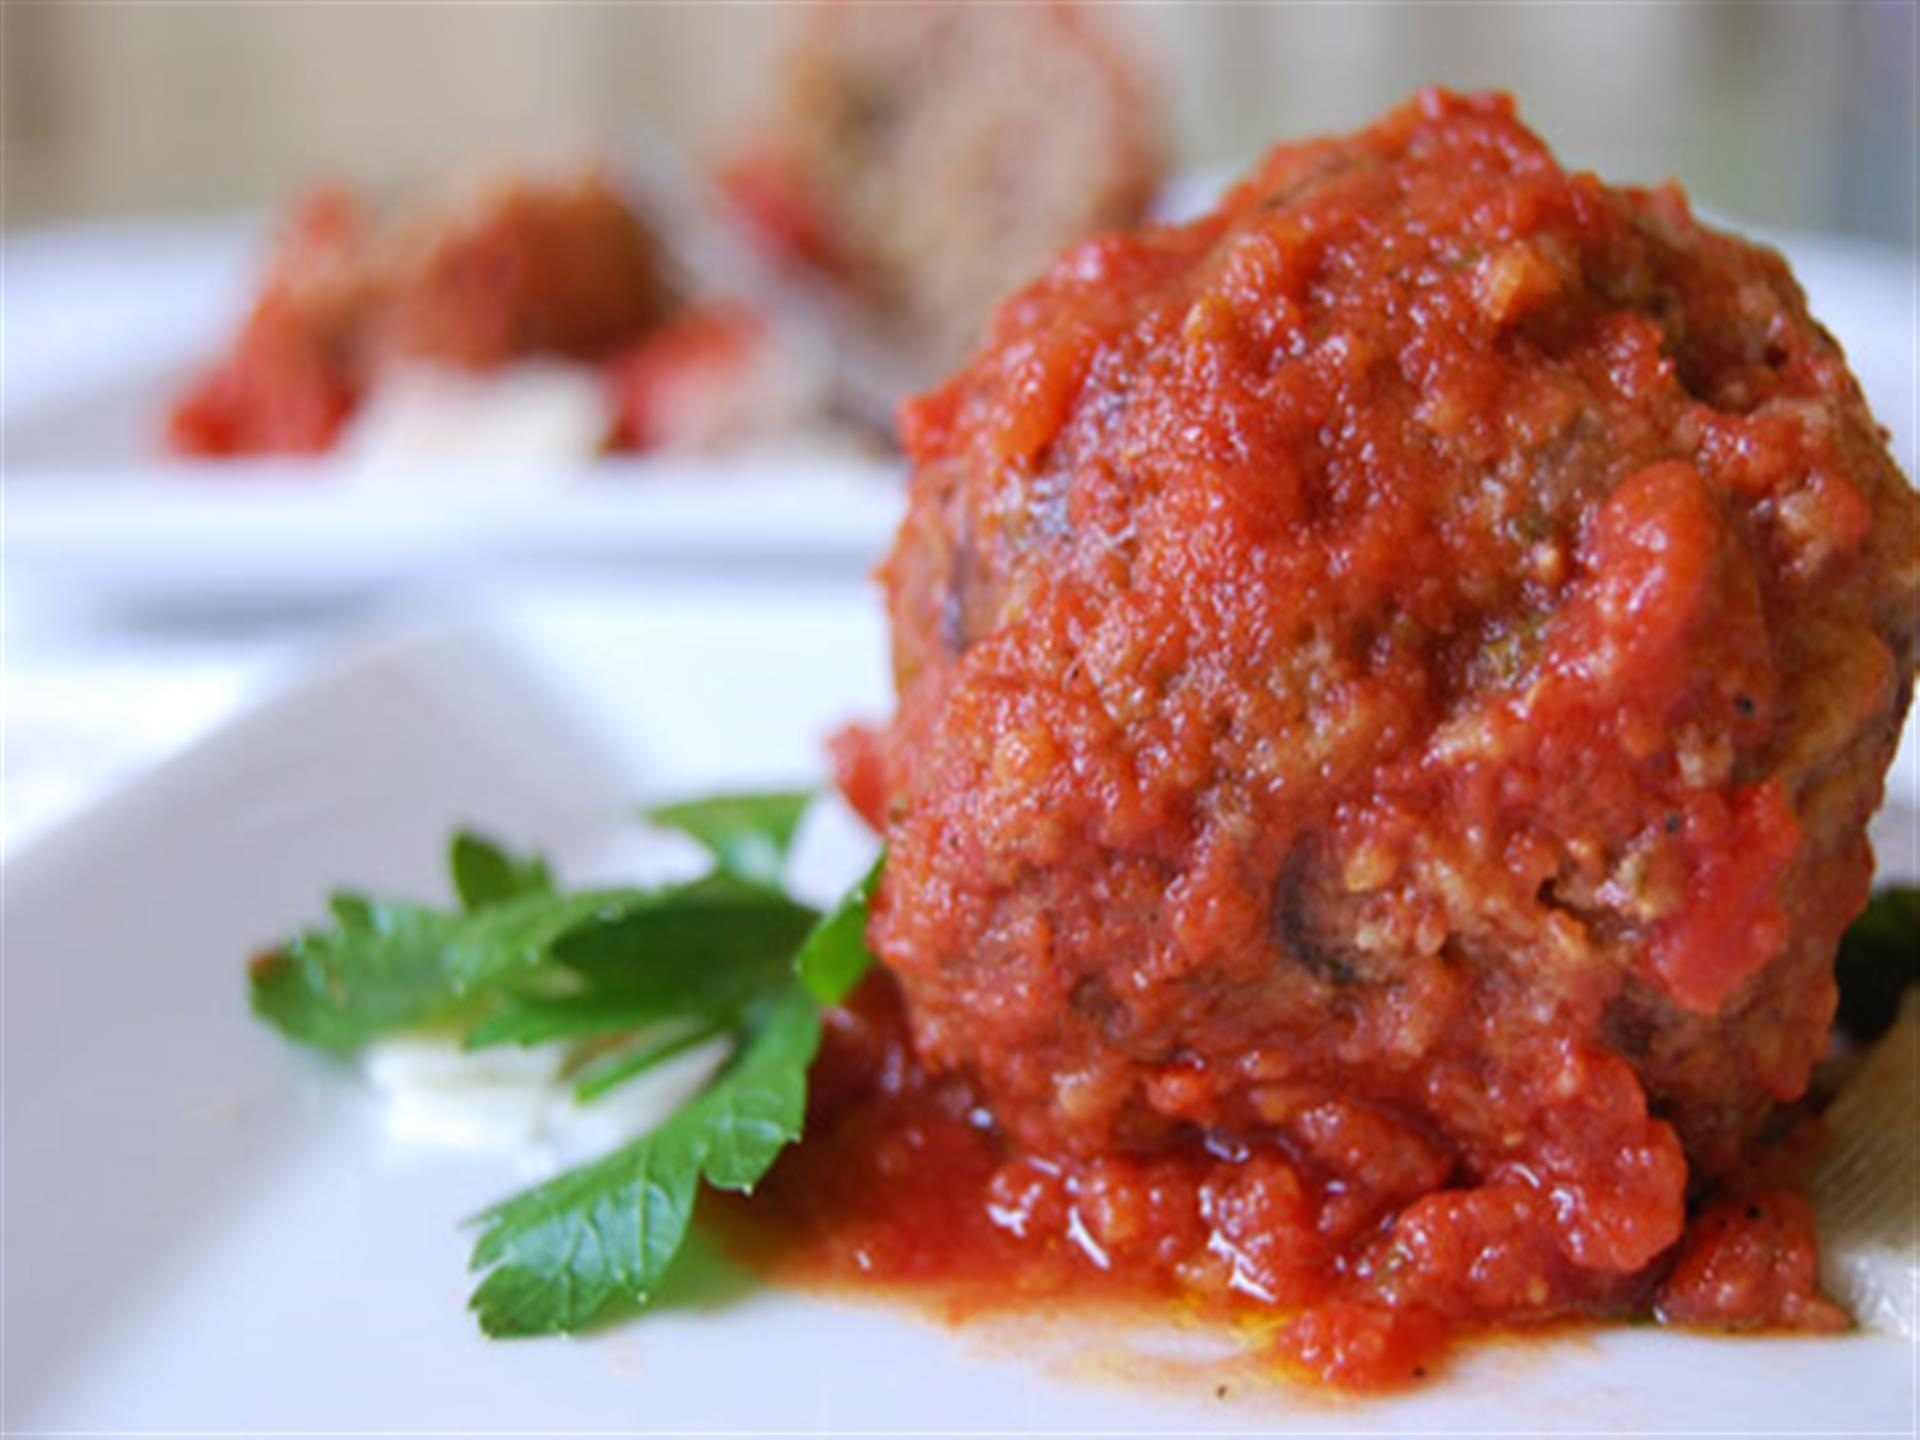 One meatball with sauce poured on top of it